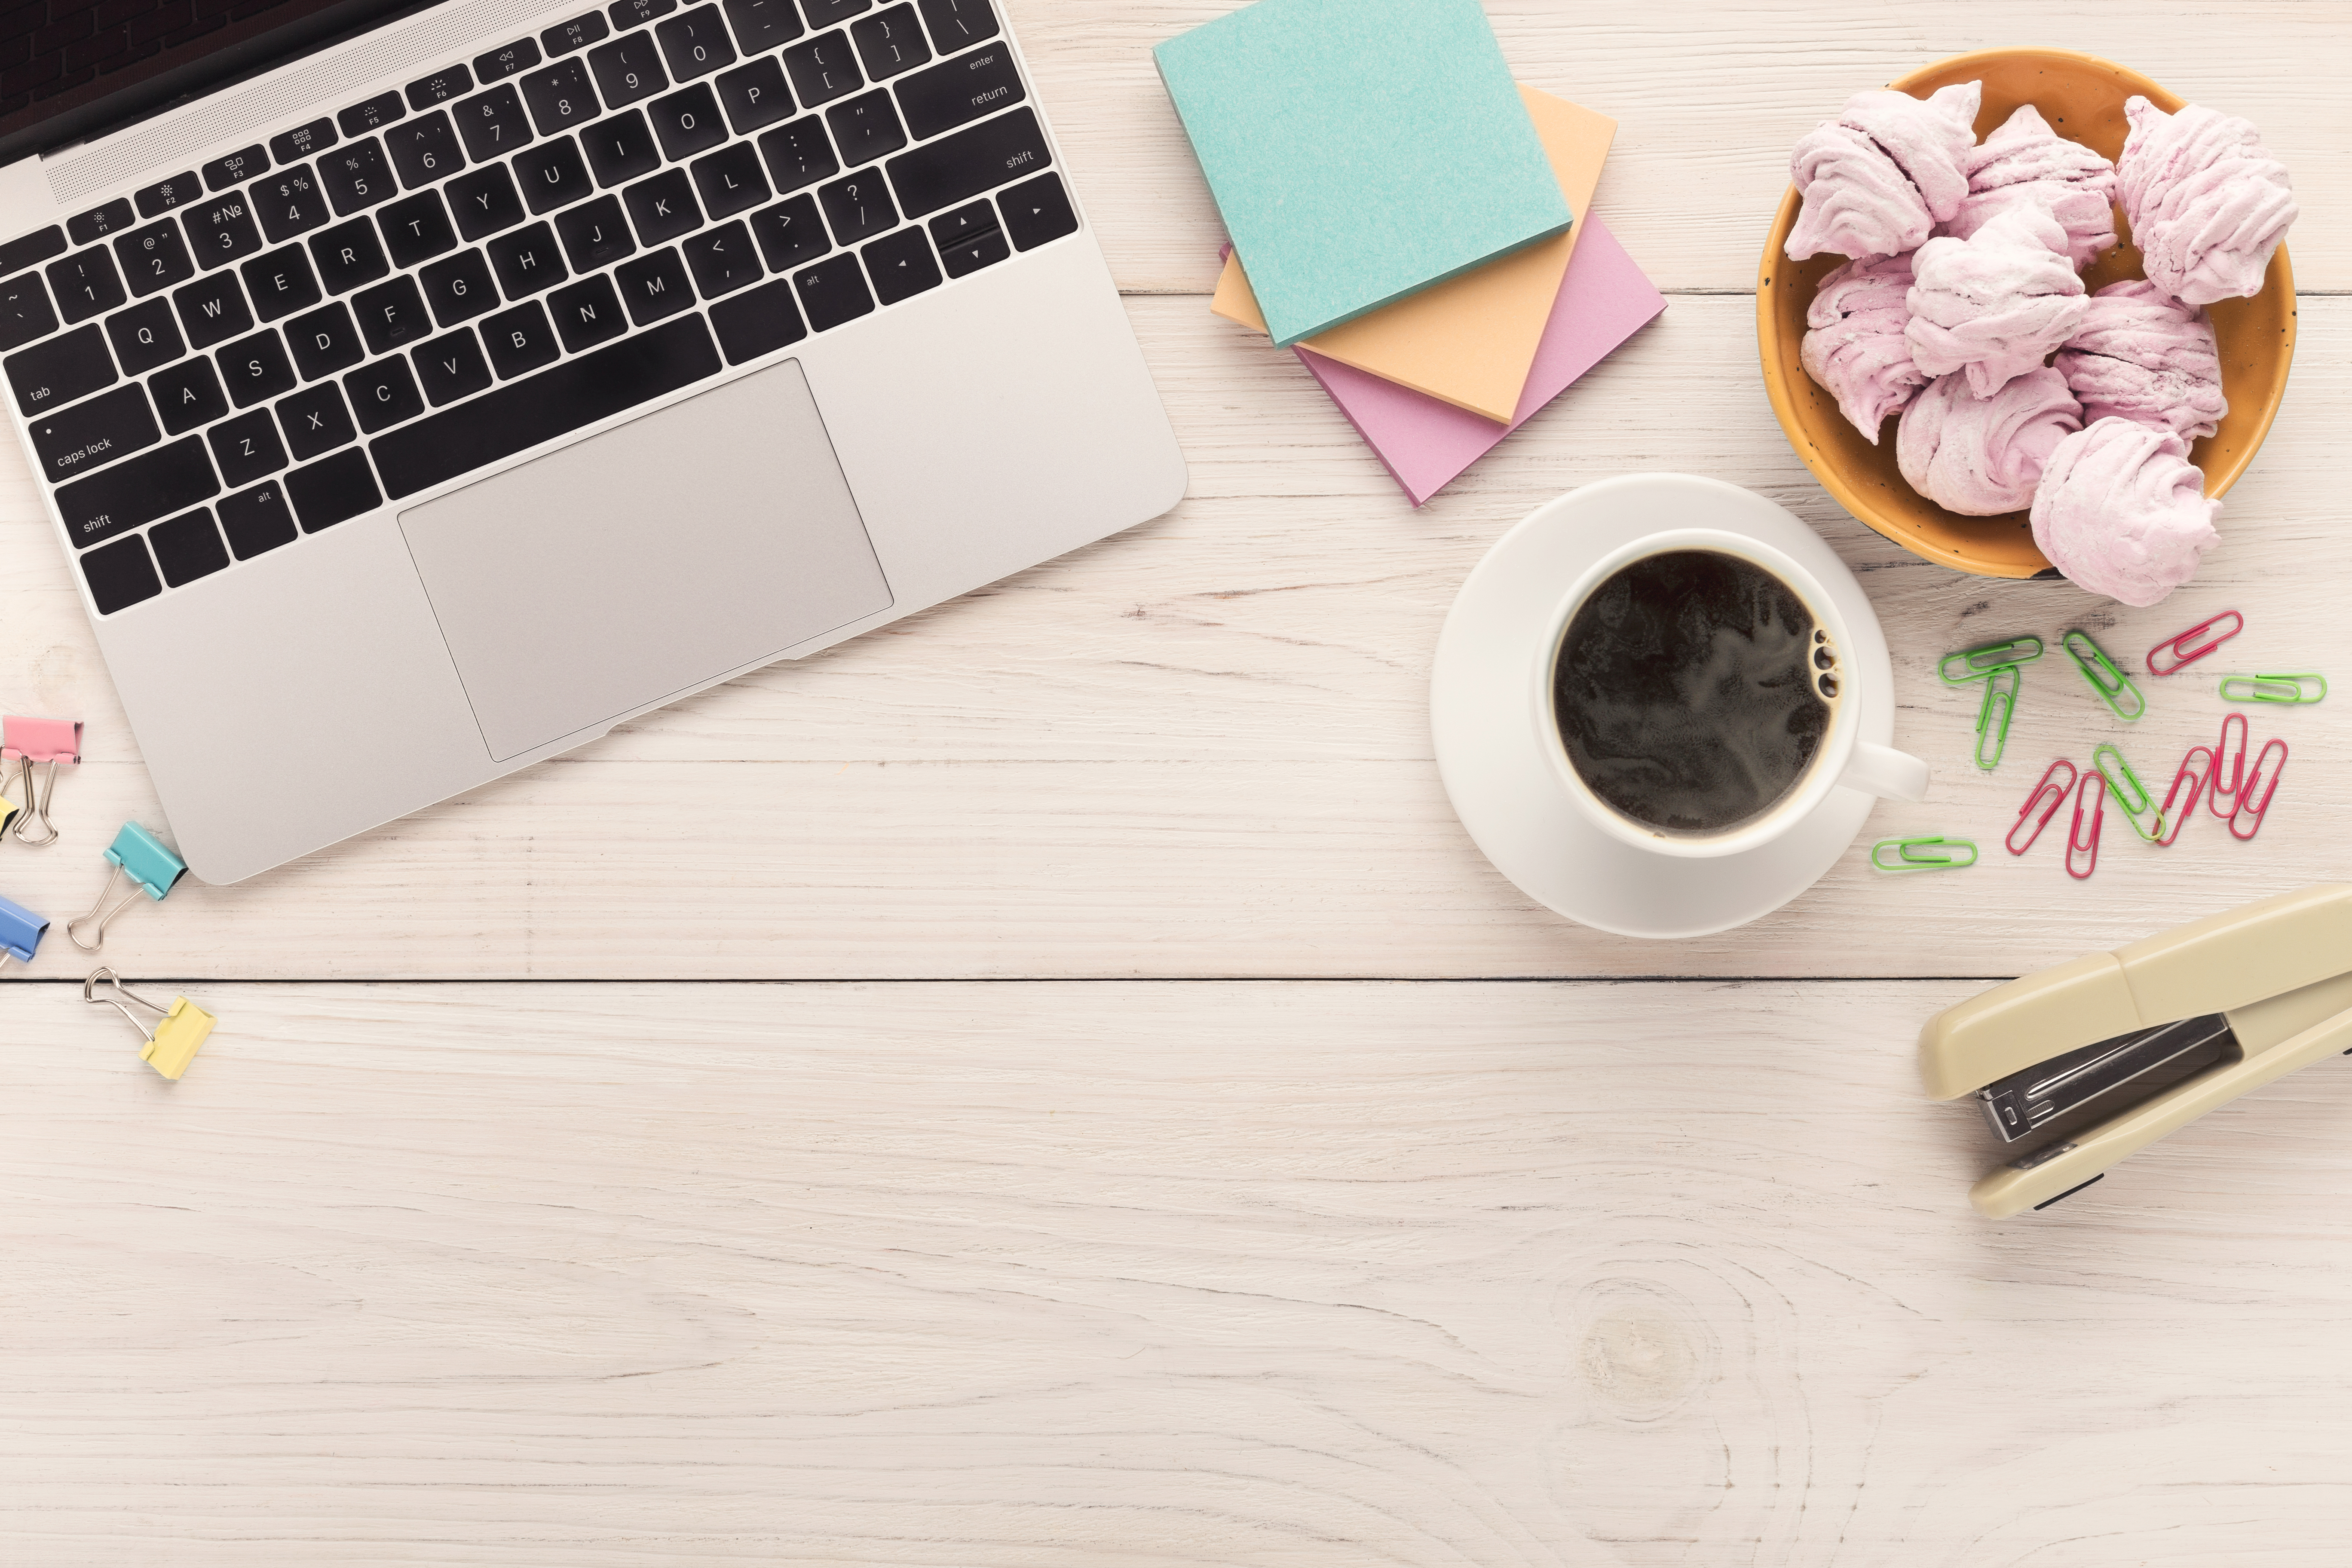 Desk with coffe cup, laptop keyboard, sweets and stationery on white background, copy space, top view. Girlish workplace, lifestyle concept